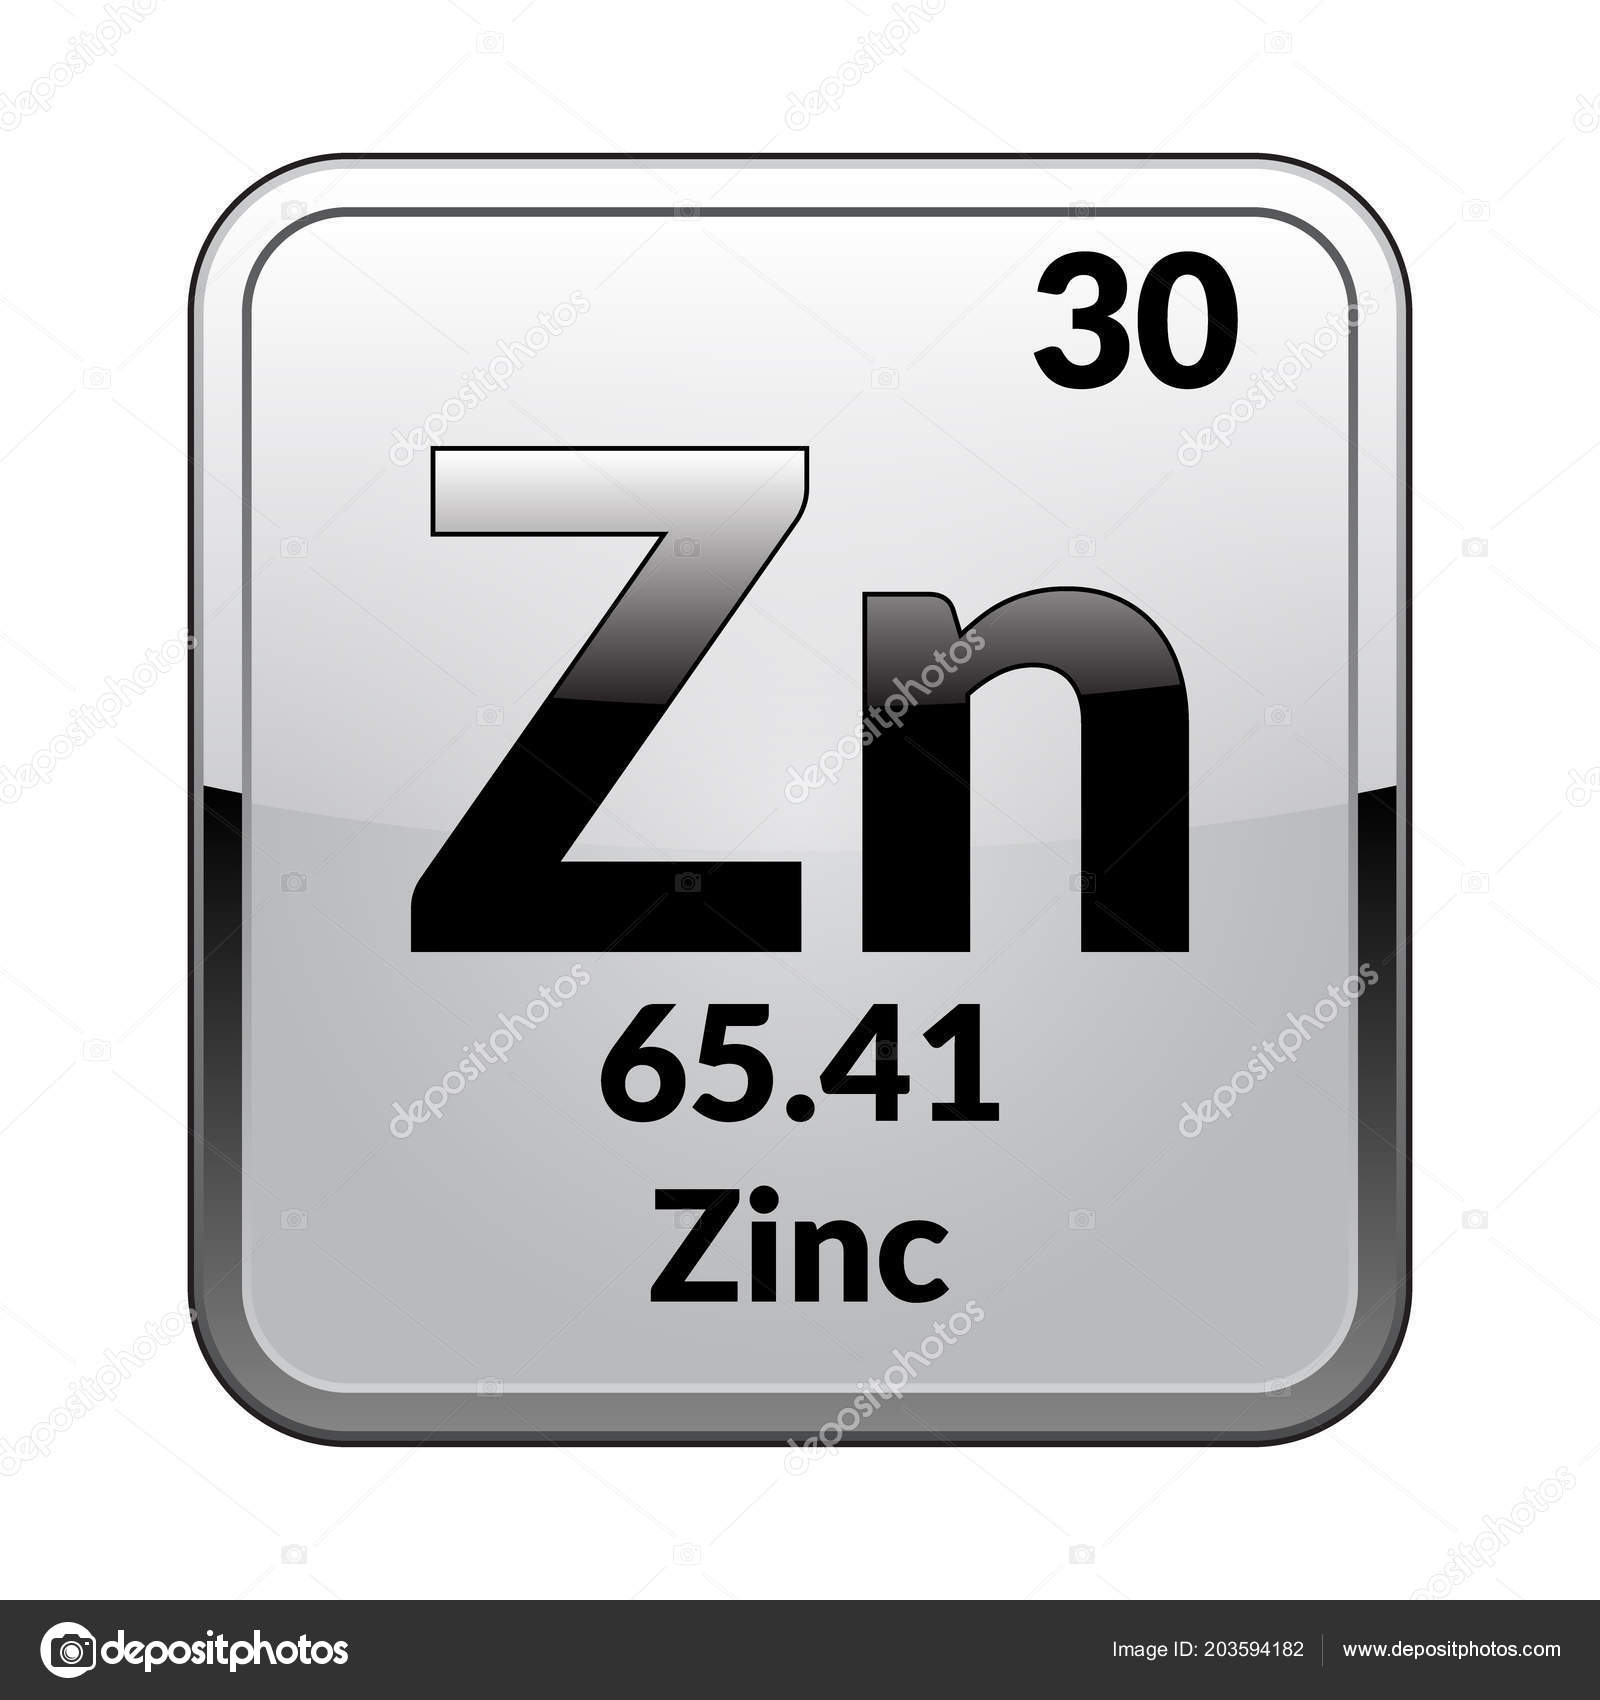 Zinc Symbol Chemical Element Periodic Table Glossy White Background